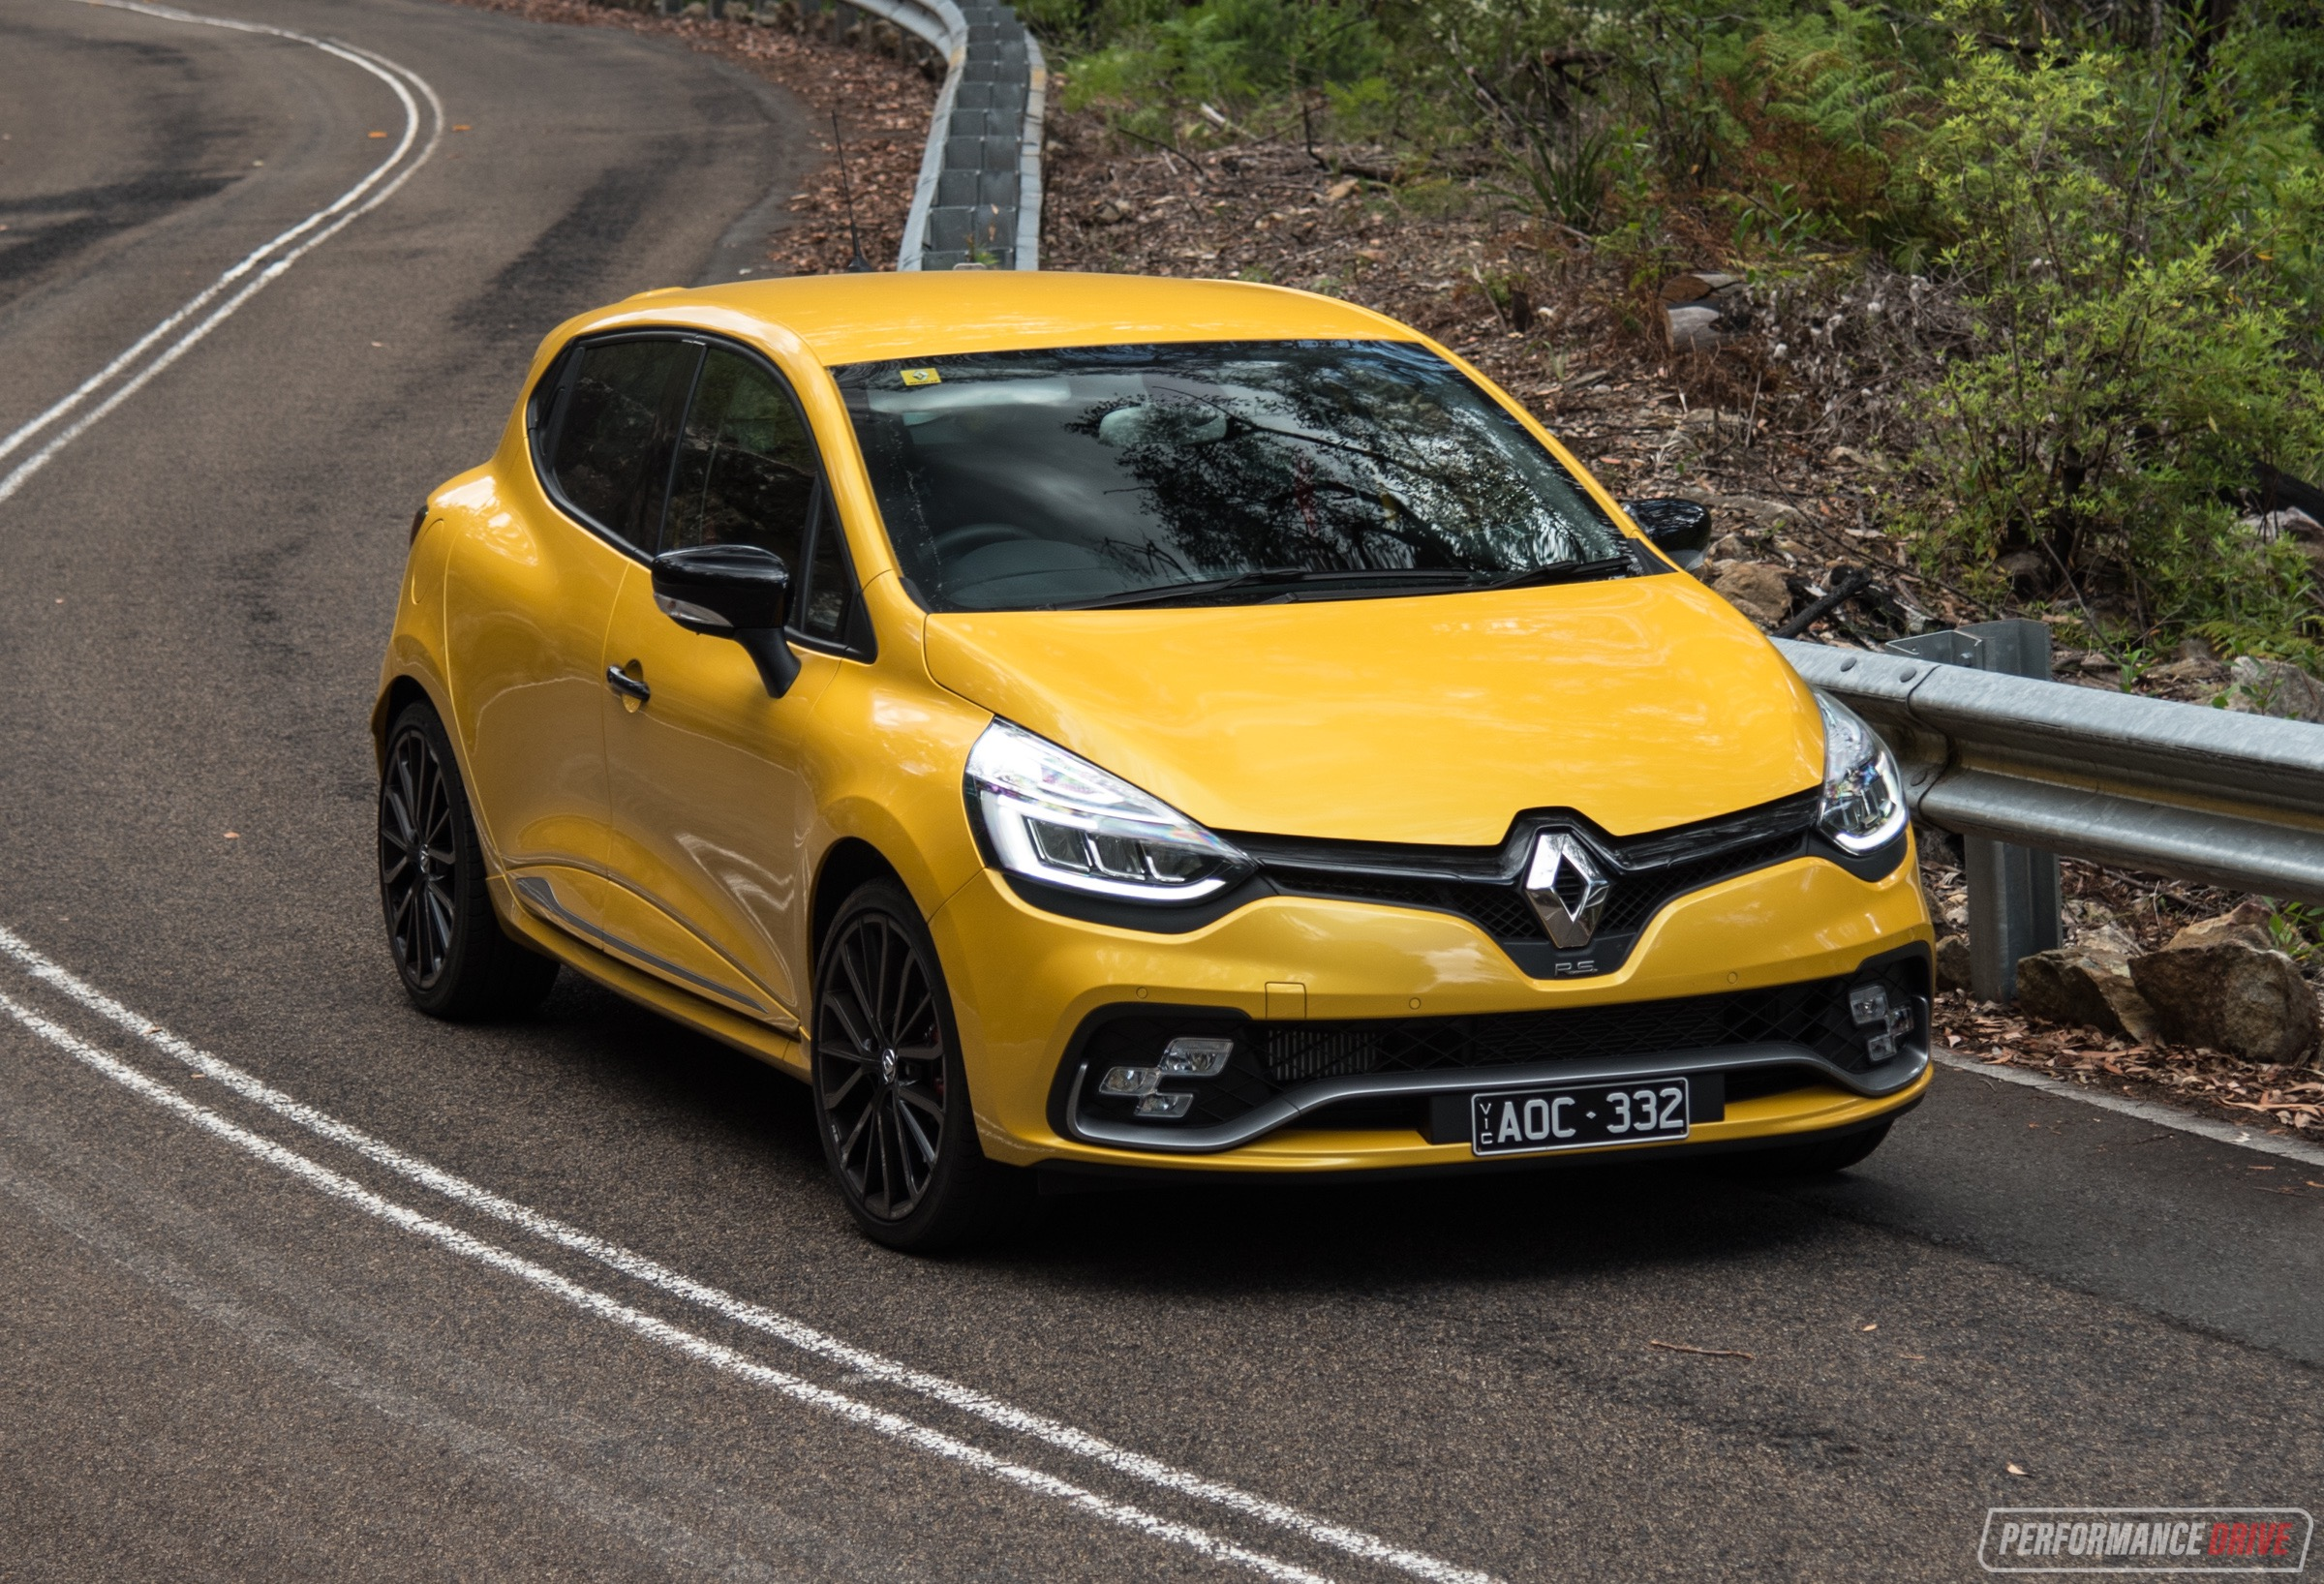 2018 Renault Clio R S  200 Cup review (video) | PerformanceDrive